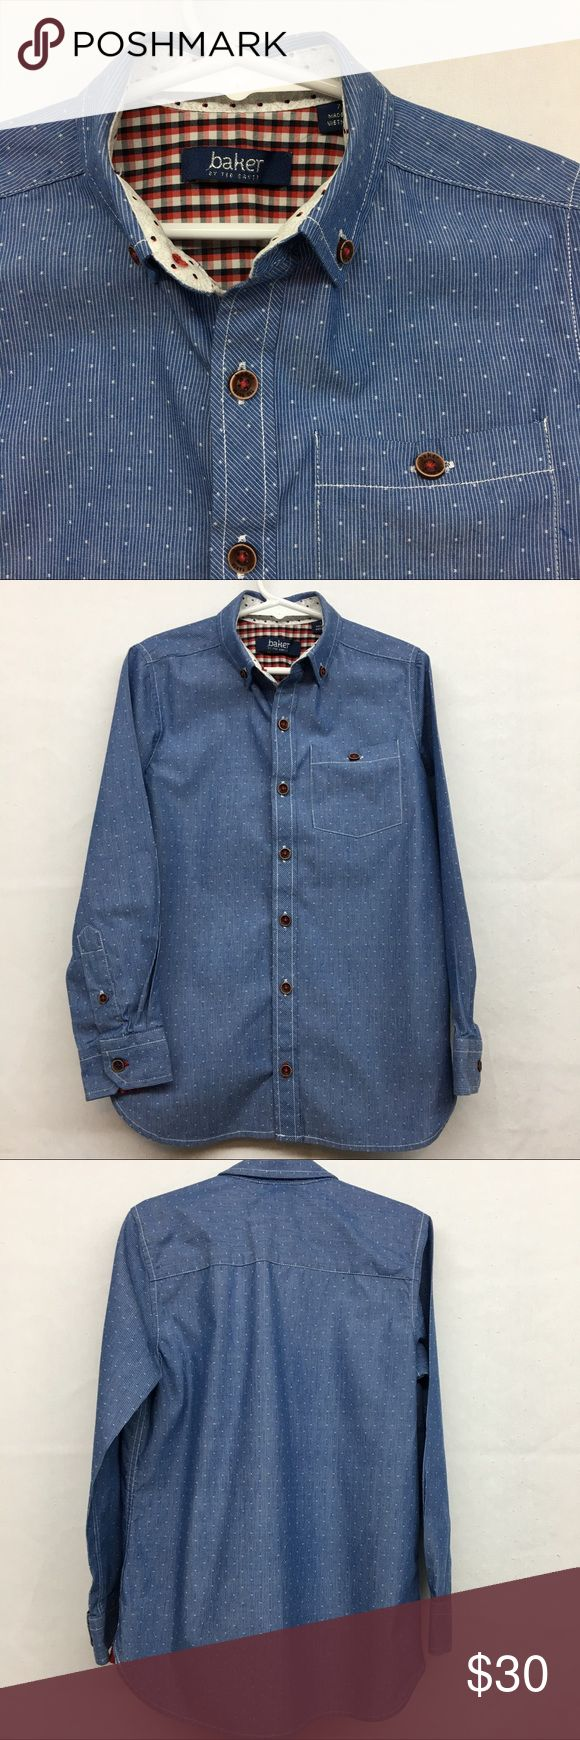 Boys Ted Baker Button Down Top Boys Ted Baker Button Down top.  Size 7.  Excellent condition with no flaws. Baker by Ted Baker Shirts & Tops Button Down Shirts